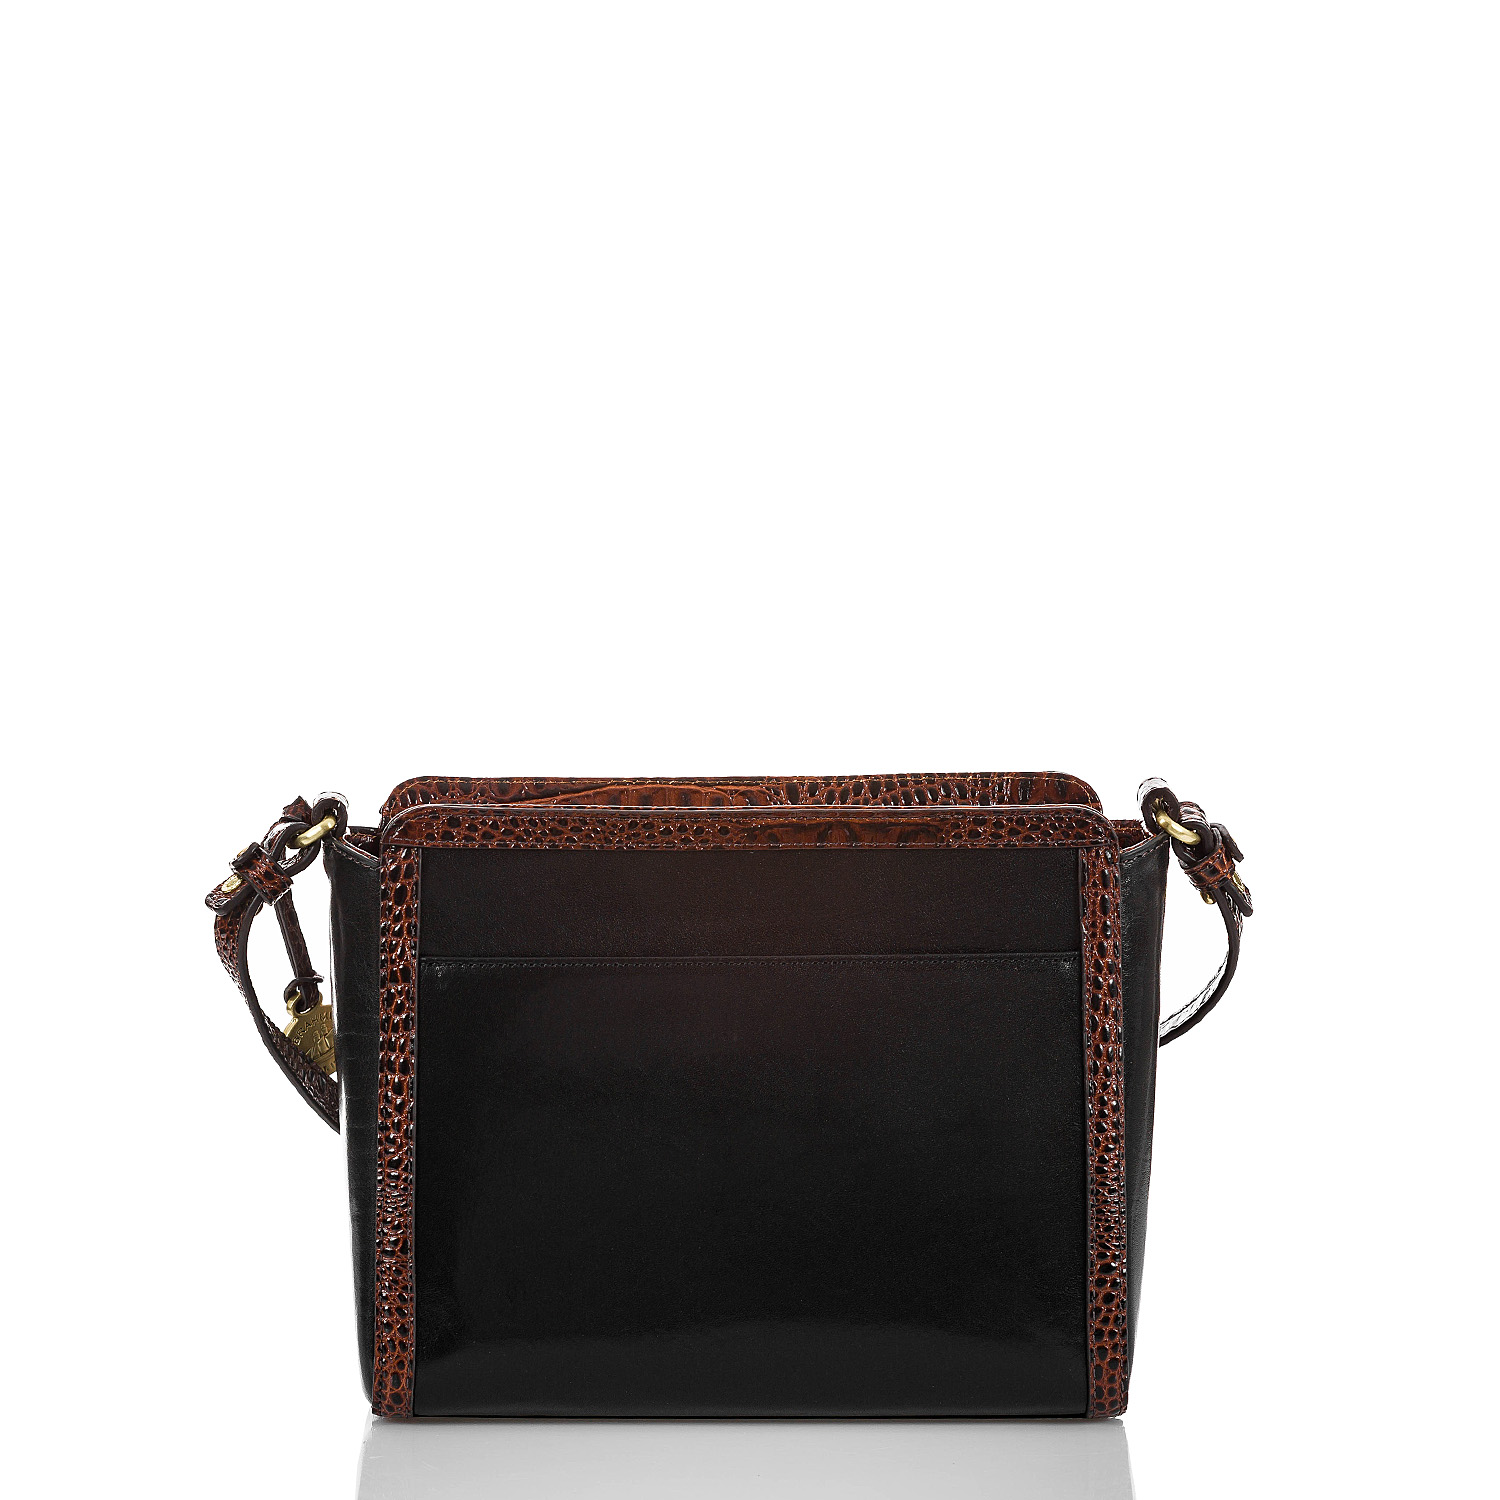 Carrie Crossbody Black Quincy